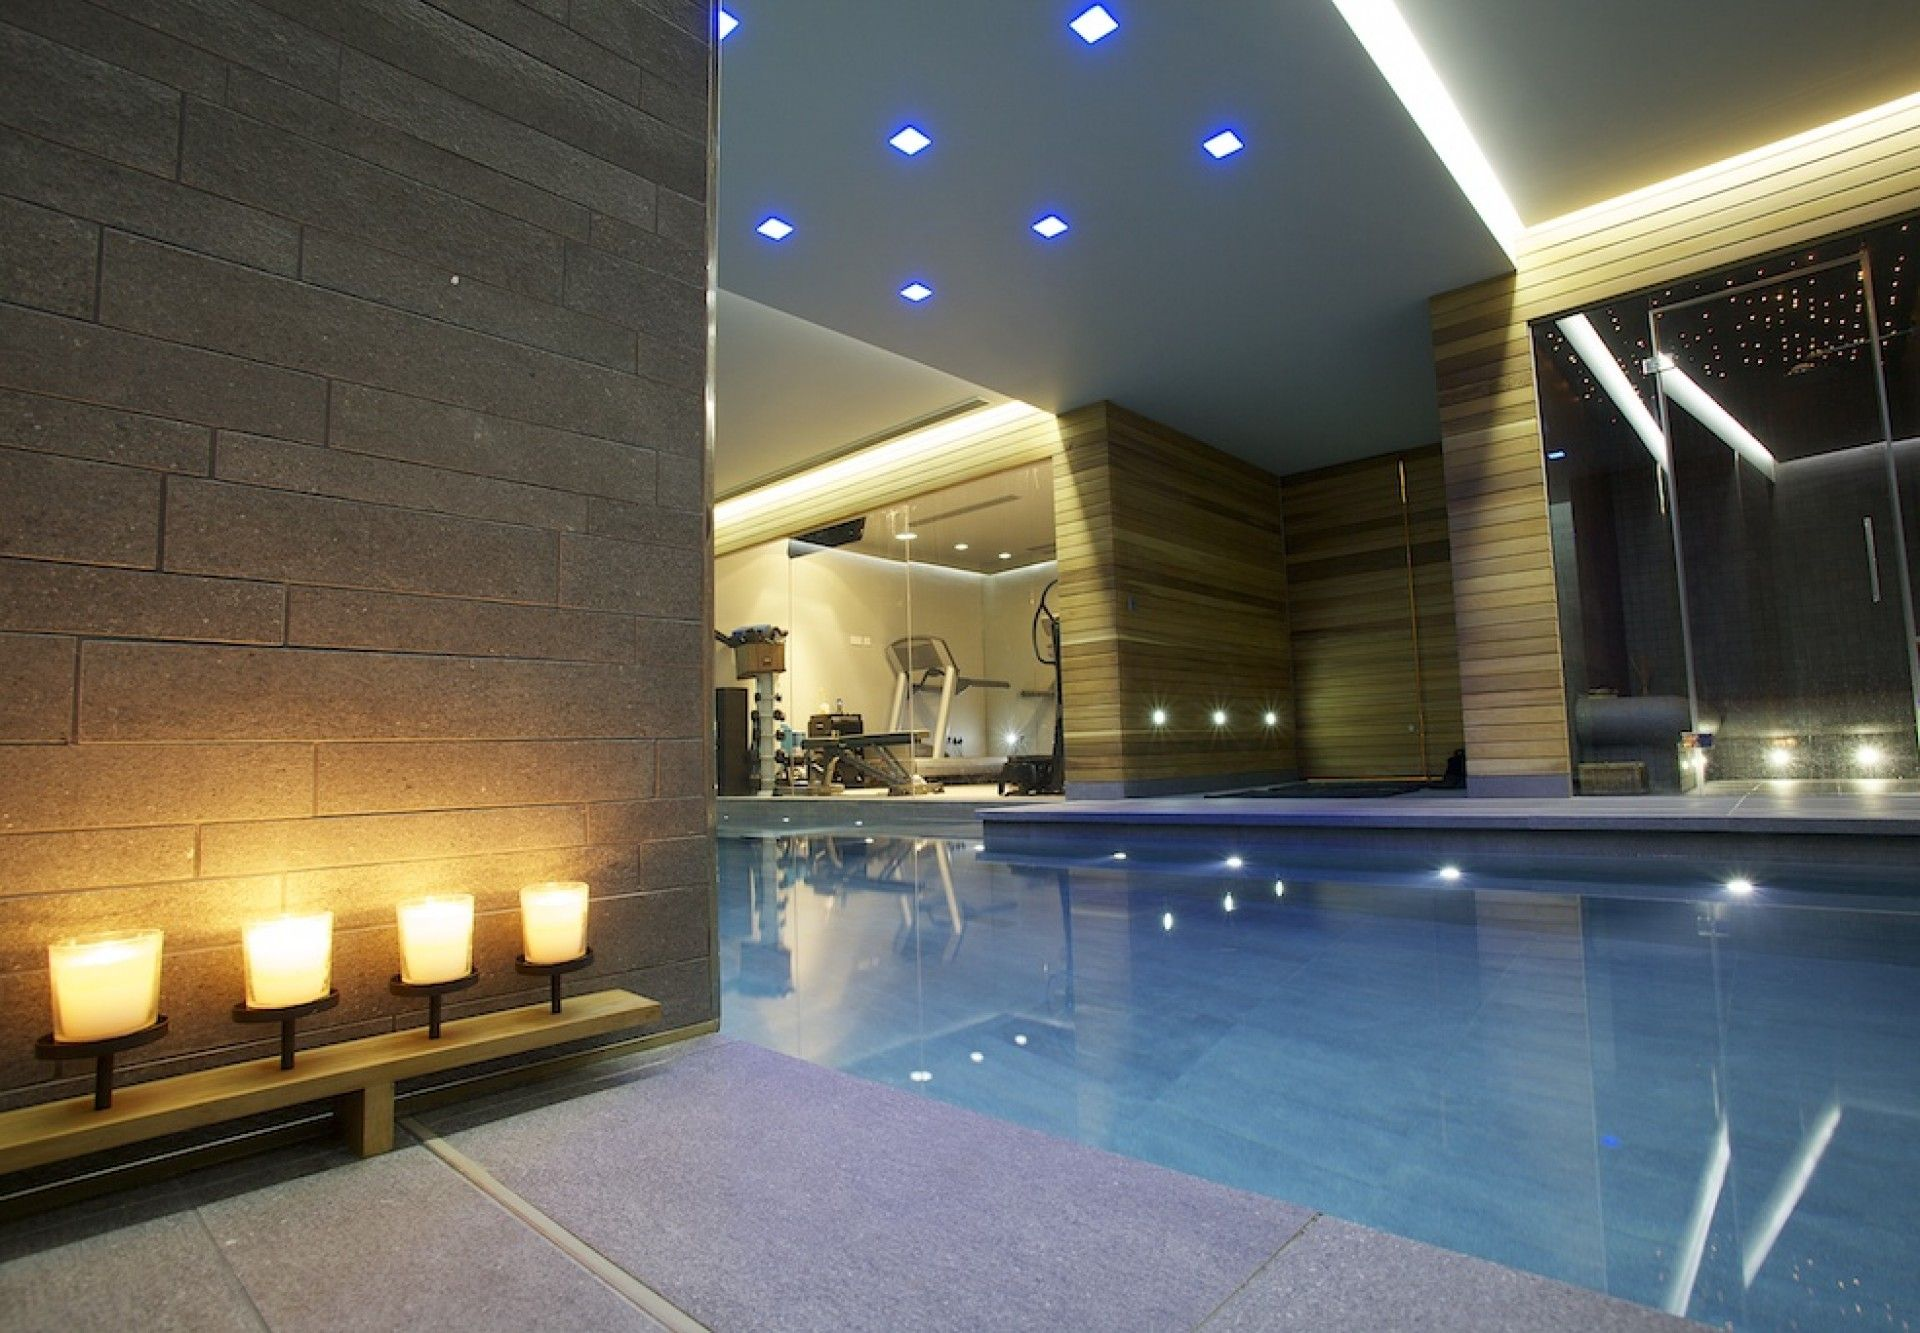 Basement indoor swimming pool in london home spa for Pool design london ontario